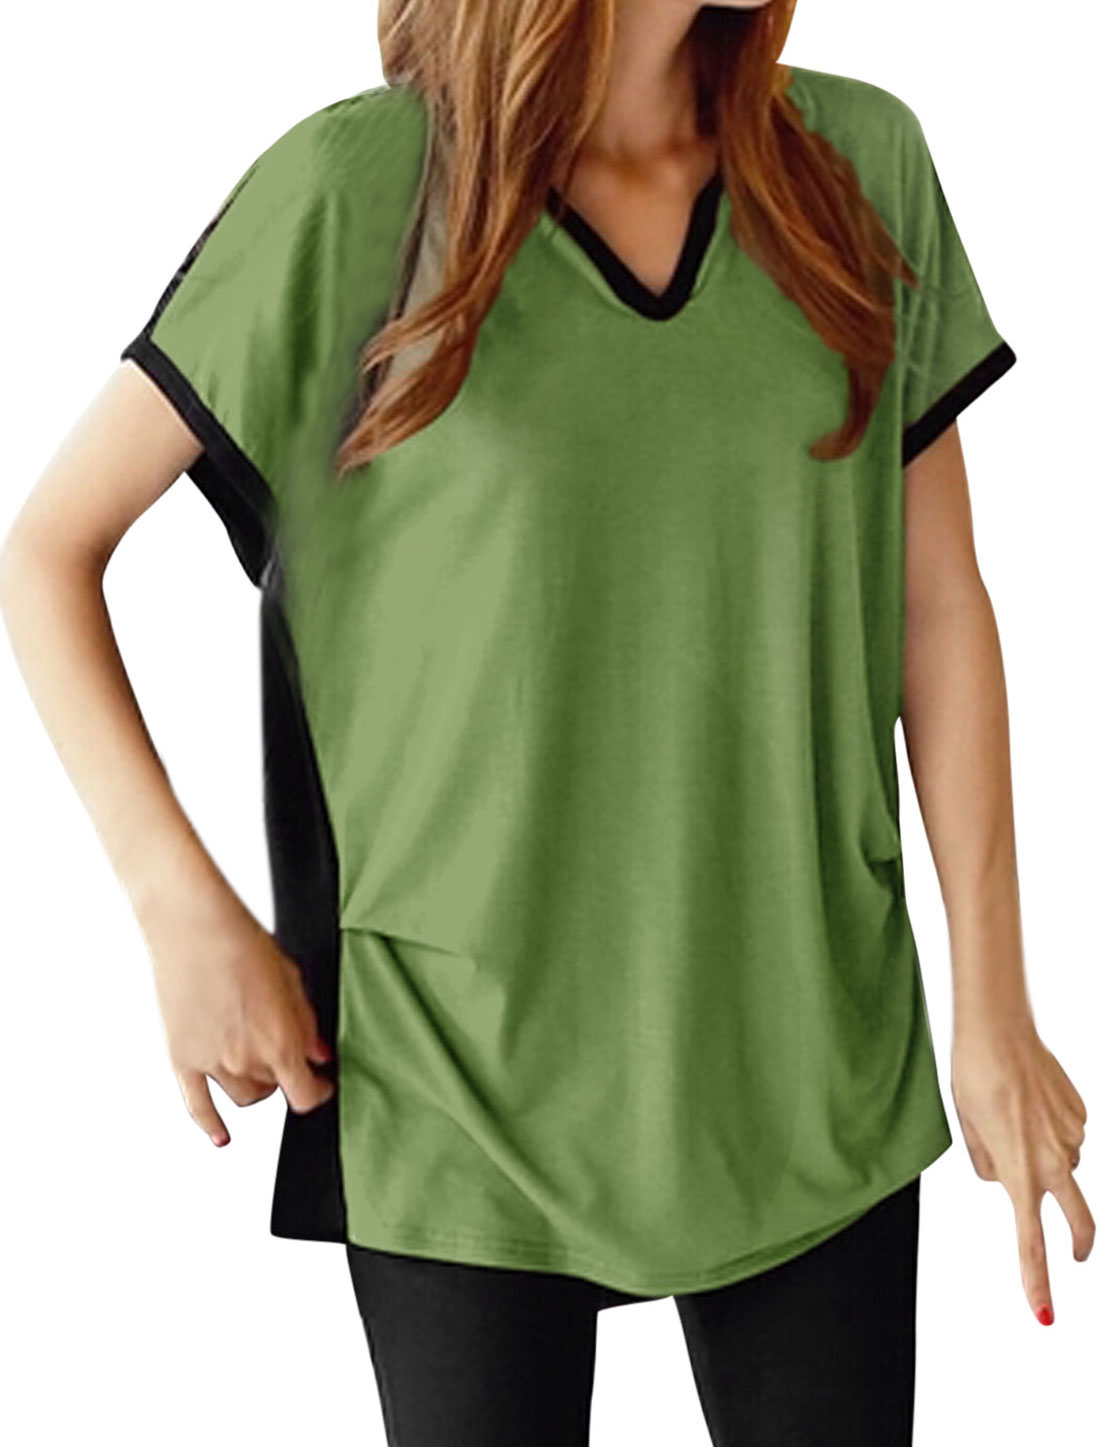 Women Turn Down Collar V Neckline Contrast Color Blouse Emerald Black XS